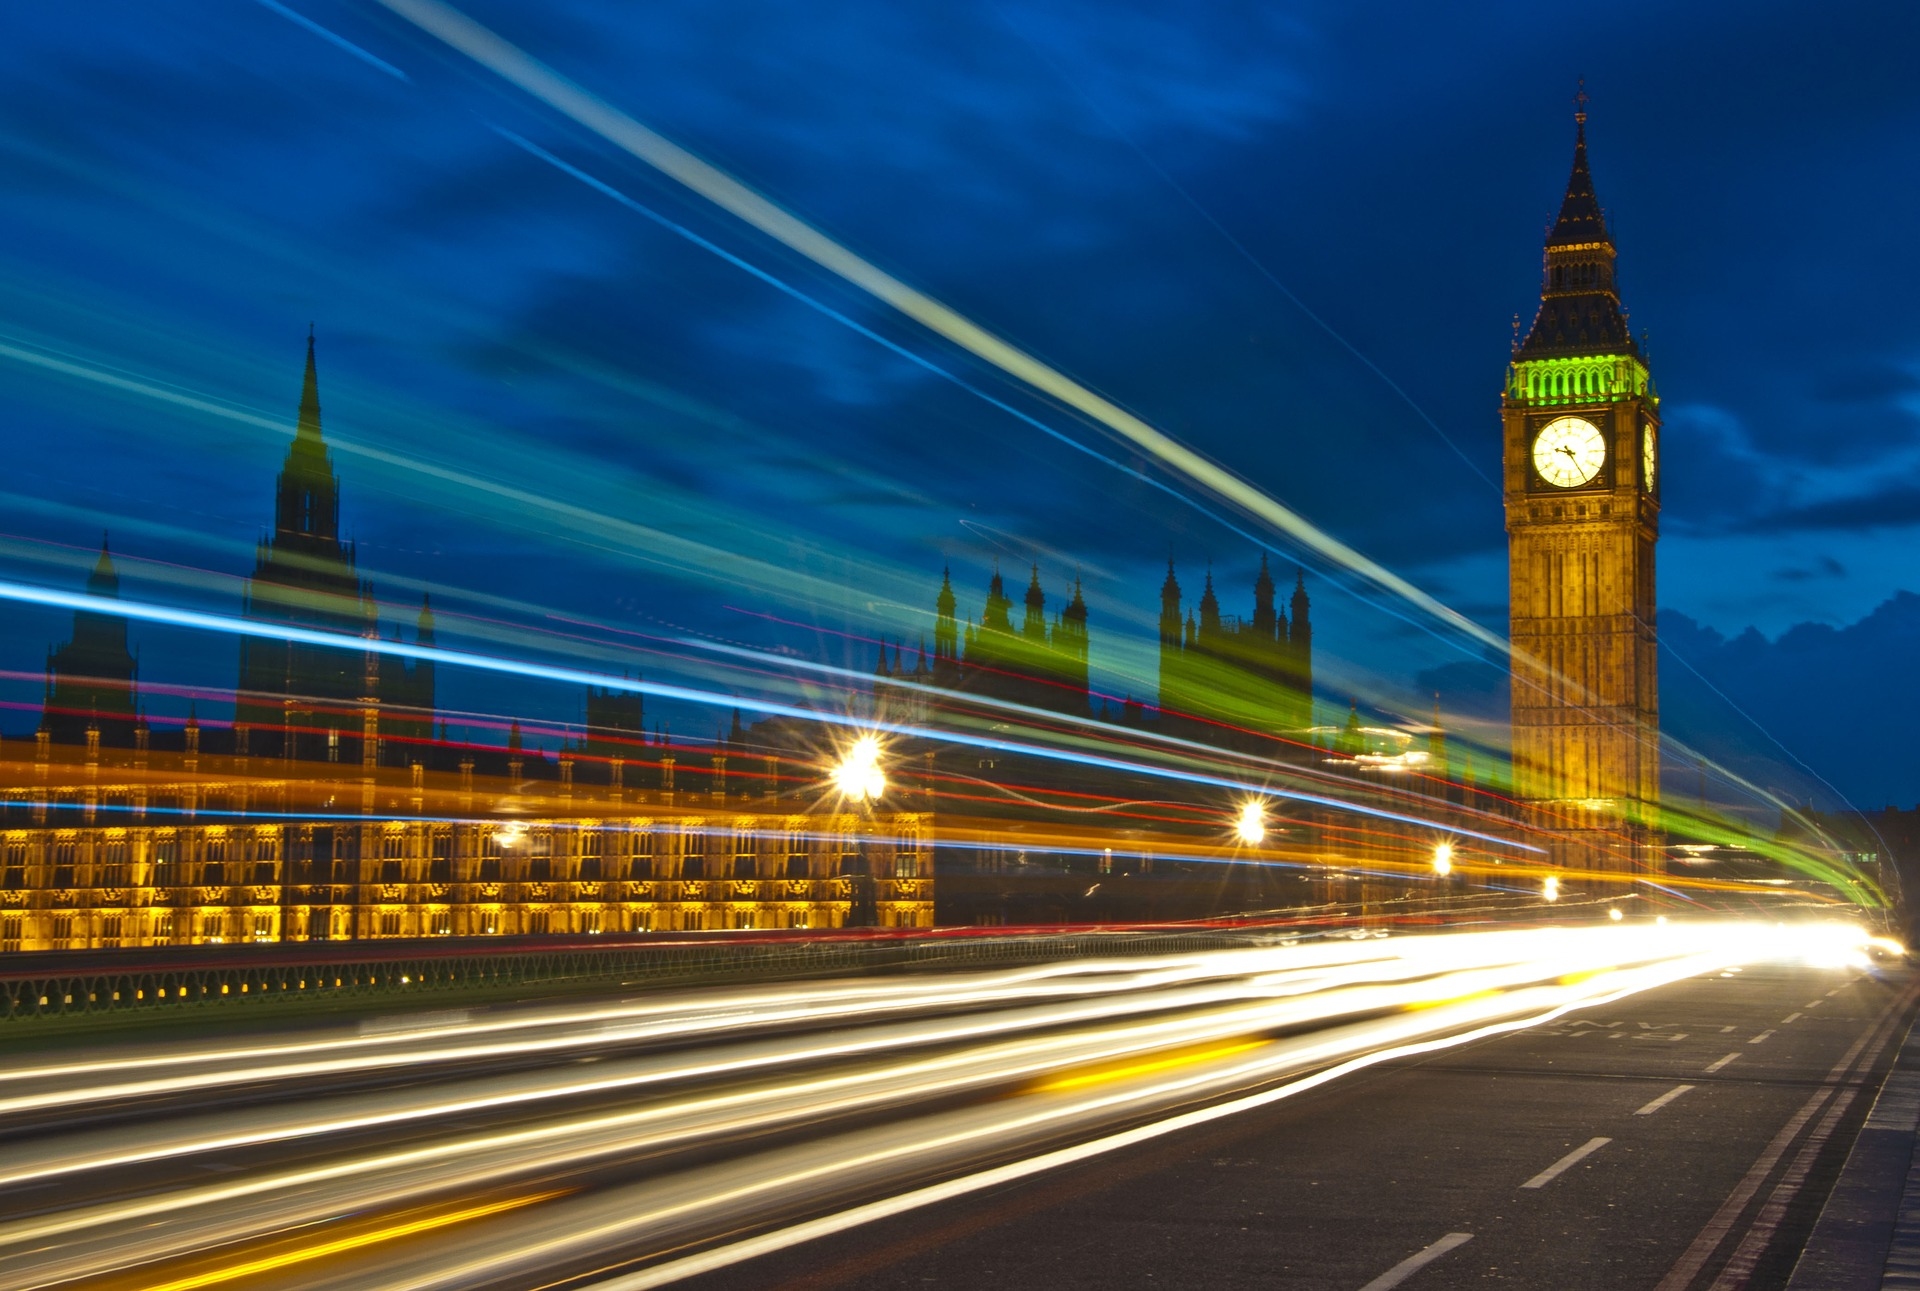 Spending Review 2021: DCN calls for financial certainty and sustainability as the essential foundations for levelling up